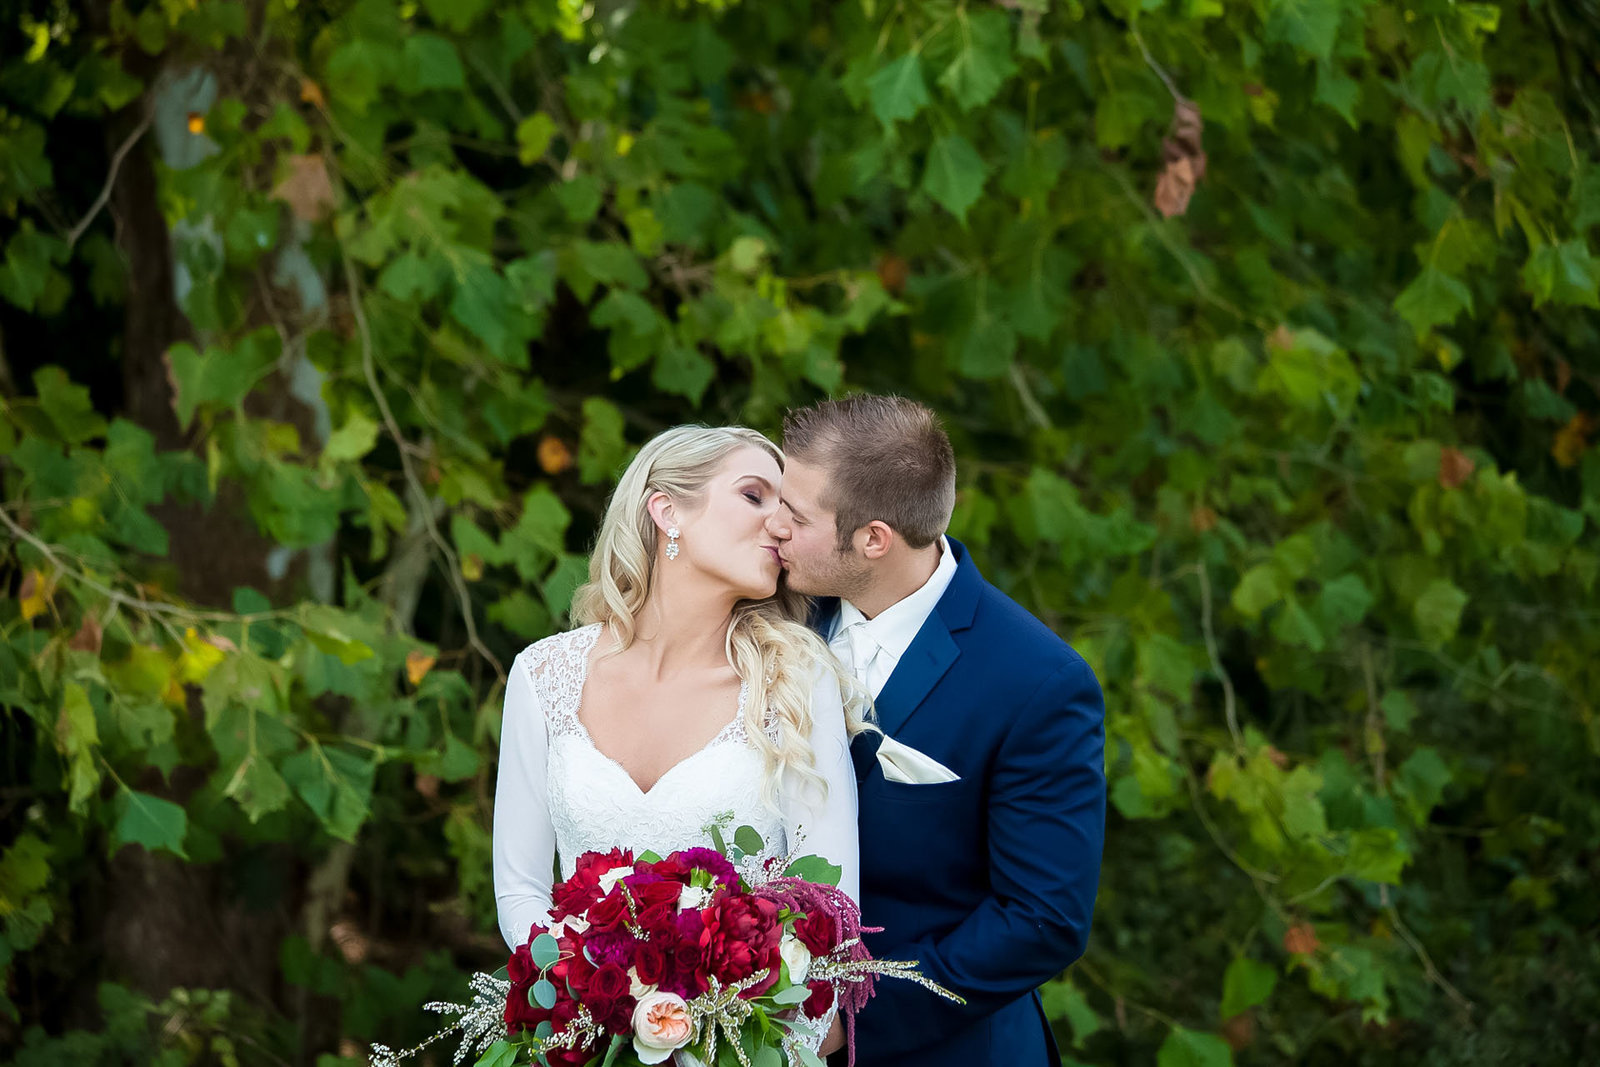 Liz Courtney Wedding Photographer southern Bride